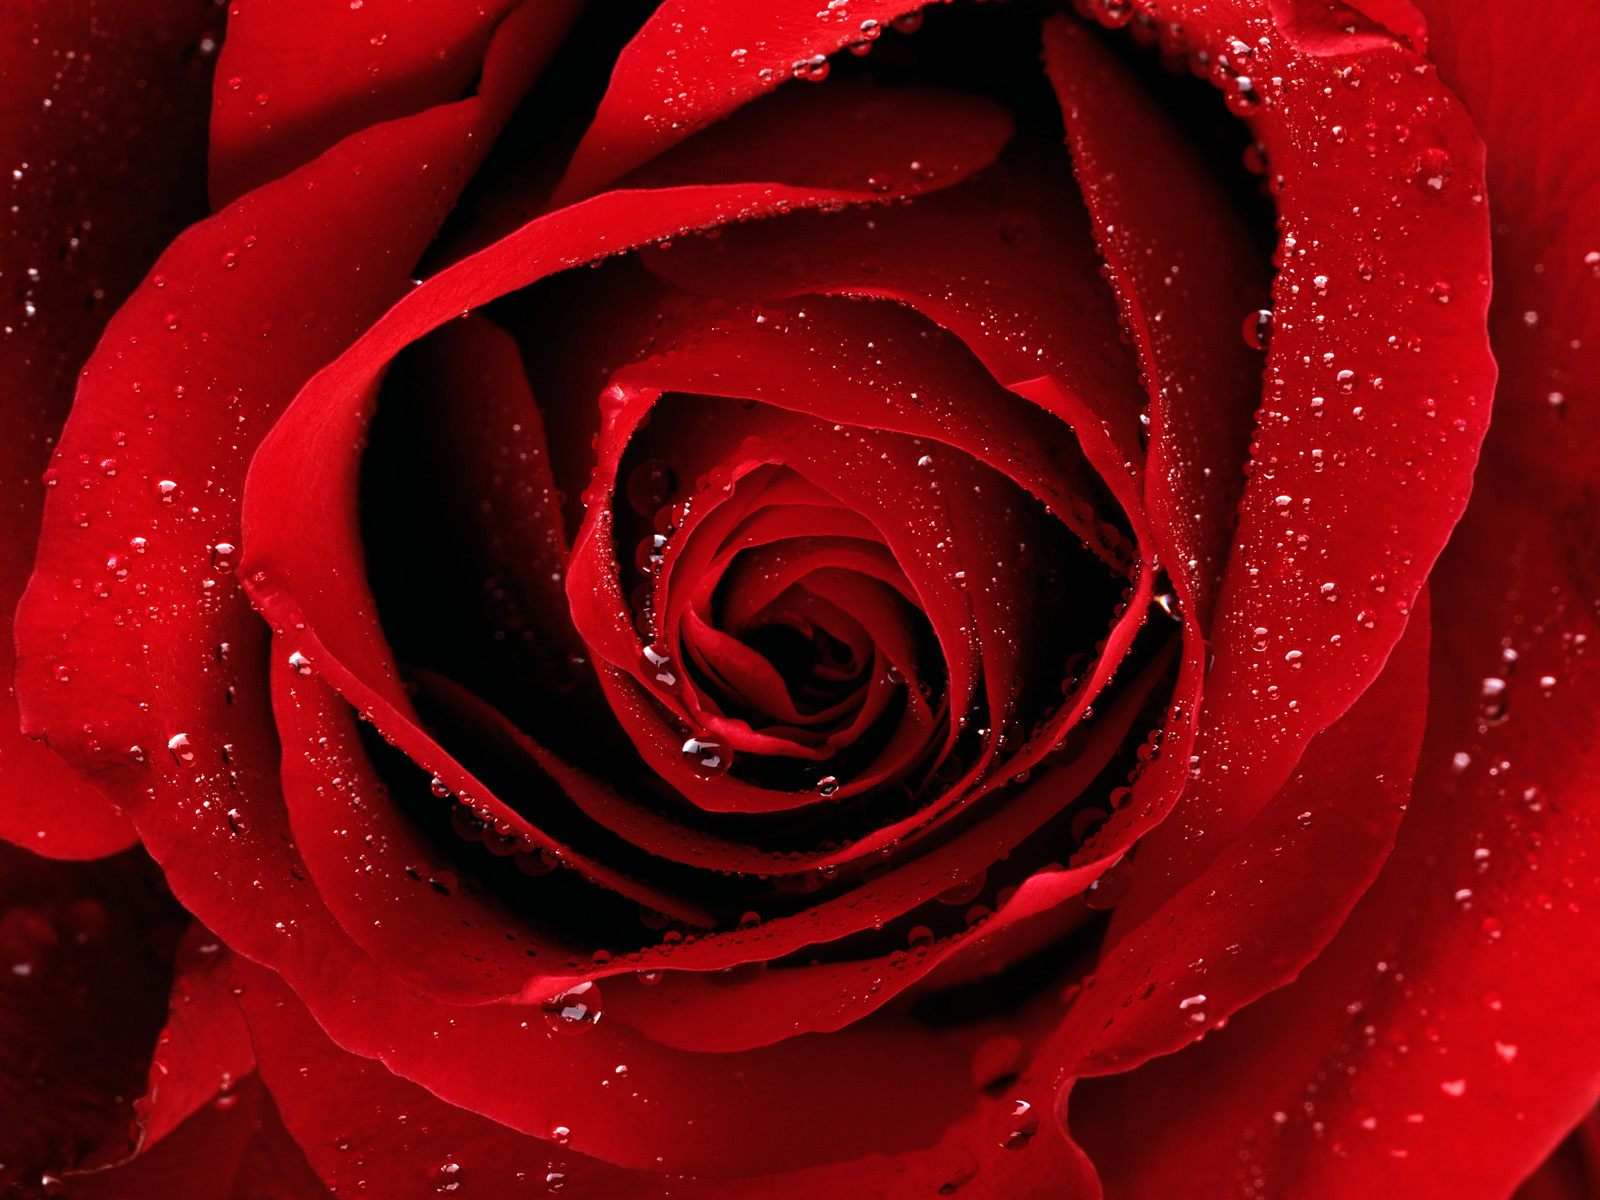 http://2.bp.blogspot.com/_lJybVjkPJOk/S_rCBEk5vyI/AAAAAAAAABI/jk4EqJVA9Ow/s1600/a_red_rose_for_you.jpg